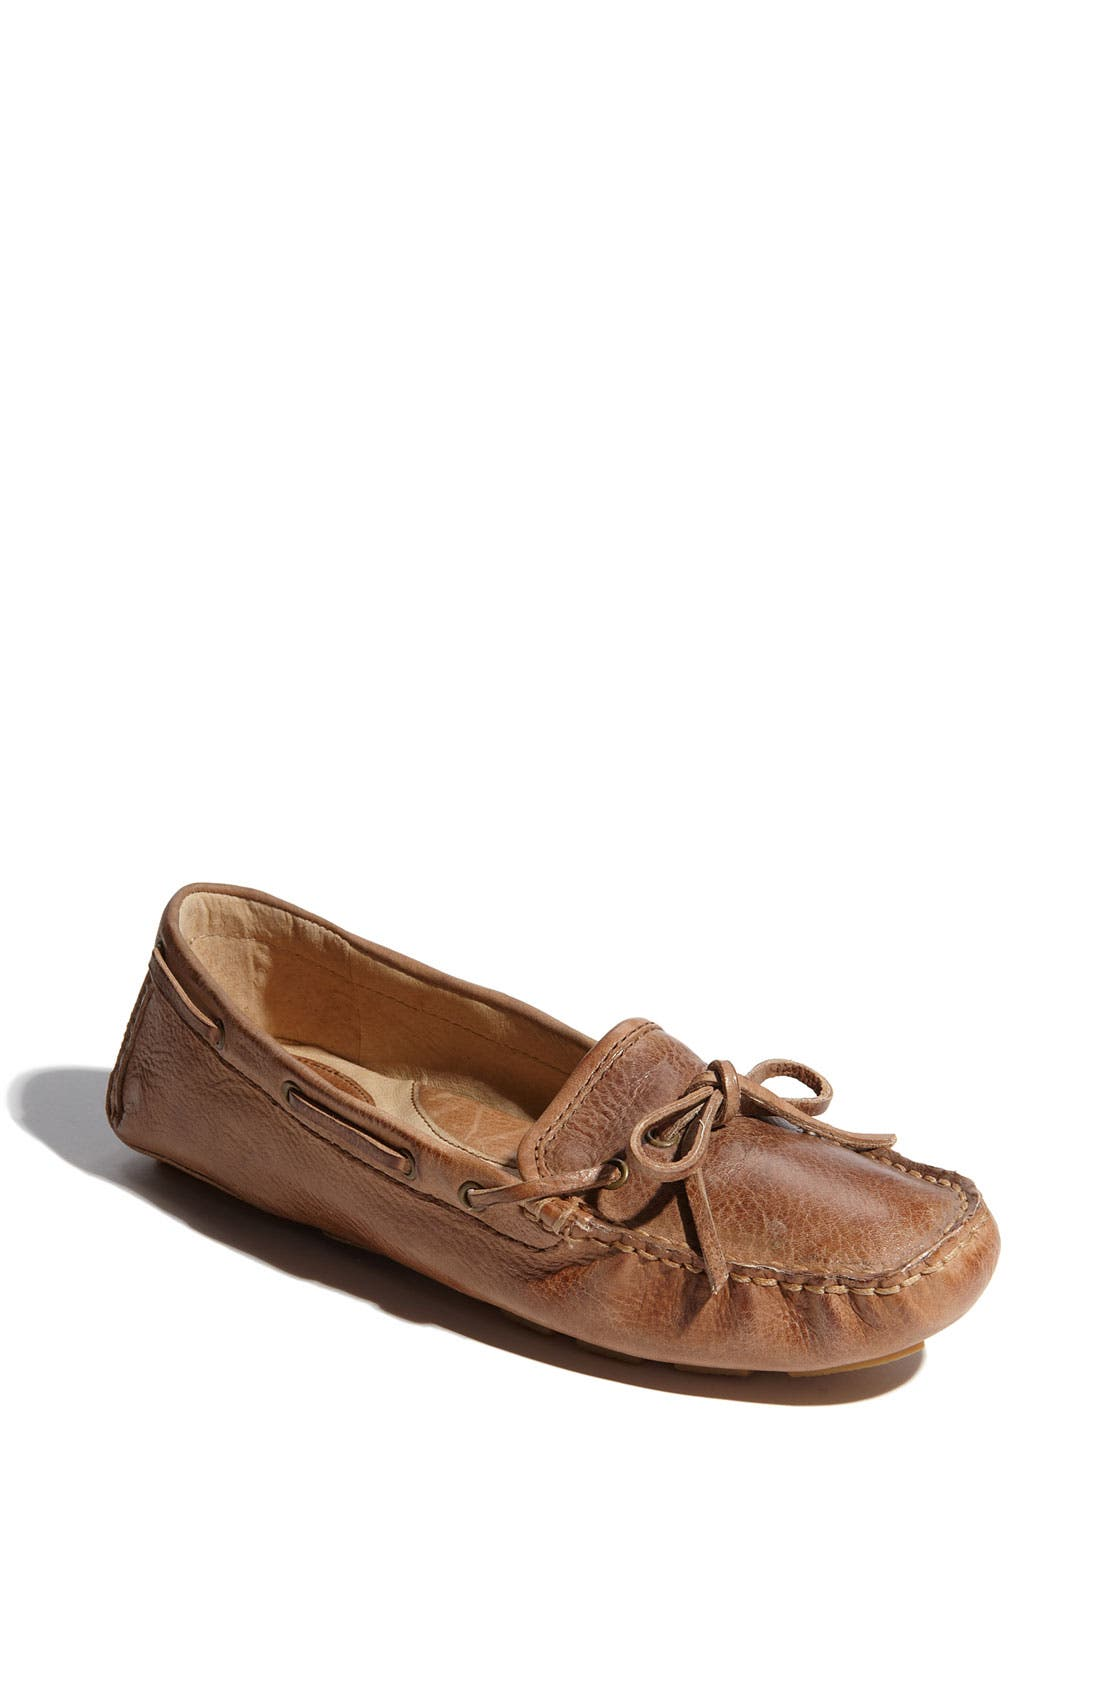 Alternate Image 1 Selected - Frye 'Reagan' Driving Loafer